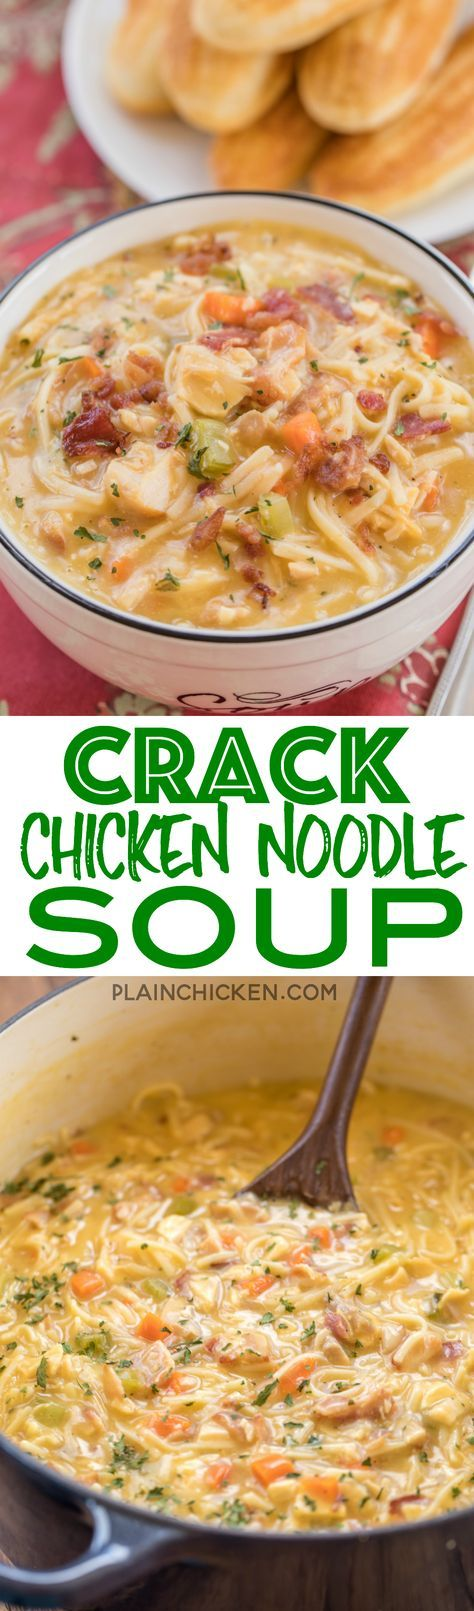 Crack Chicken Noodle Soup - this soup should come with a warning label! SO GOOD!!! Ready in 30 minutes! Chicken, cheese soup, milk, chicken broth, celery, carrots, ranch mix, bacon, cheddar cheese and egg noodles. Everyone went back for seconds - even our super picky eaters! A great kid-friendly dinner!! We love this soup!